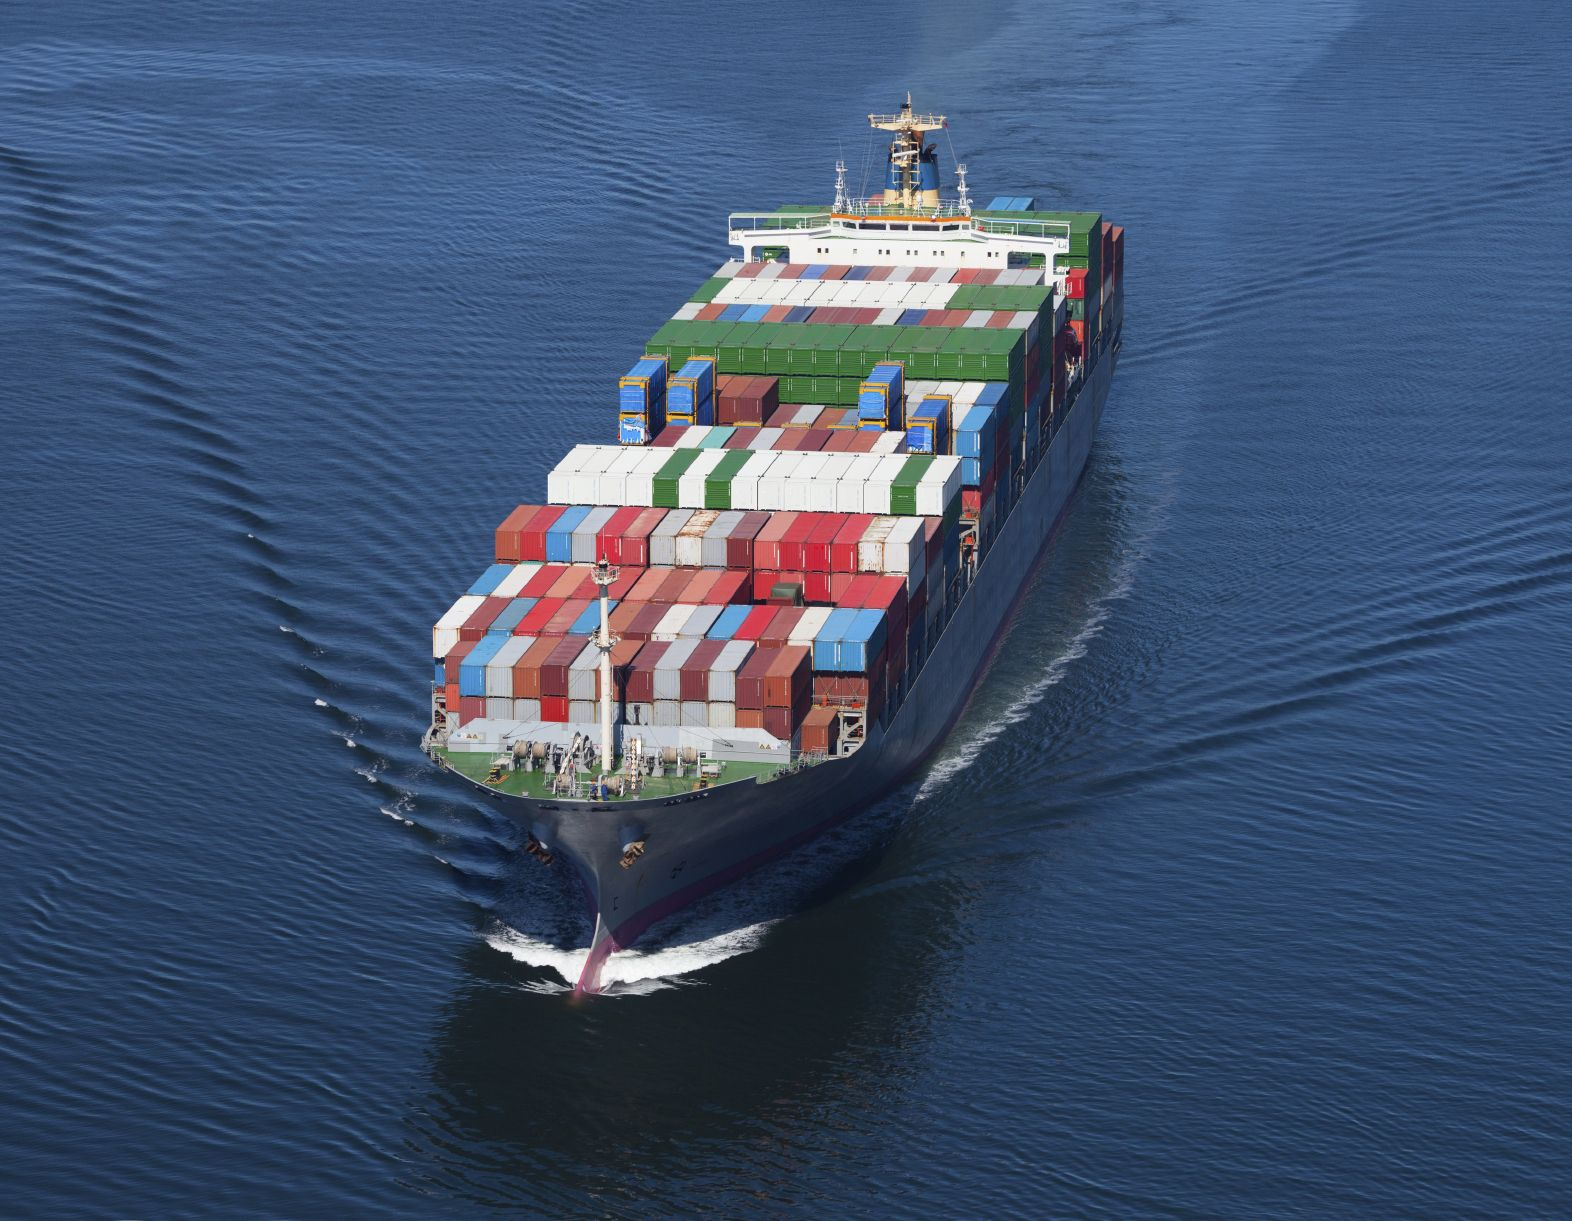 Air Freight Vs SeaFreight When to Choose What? Click the